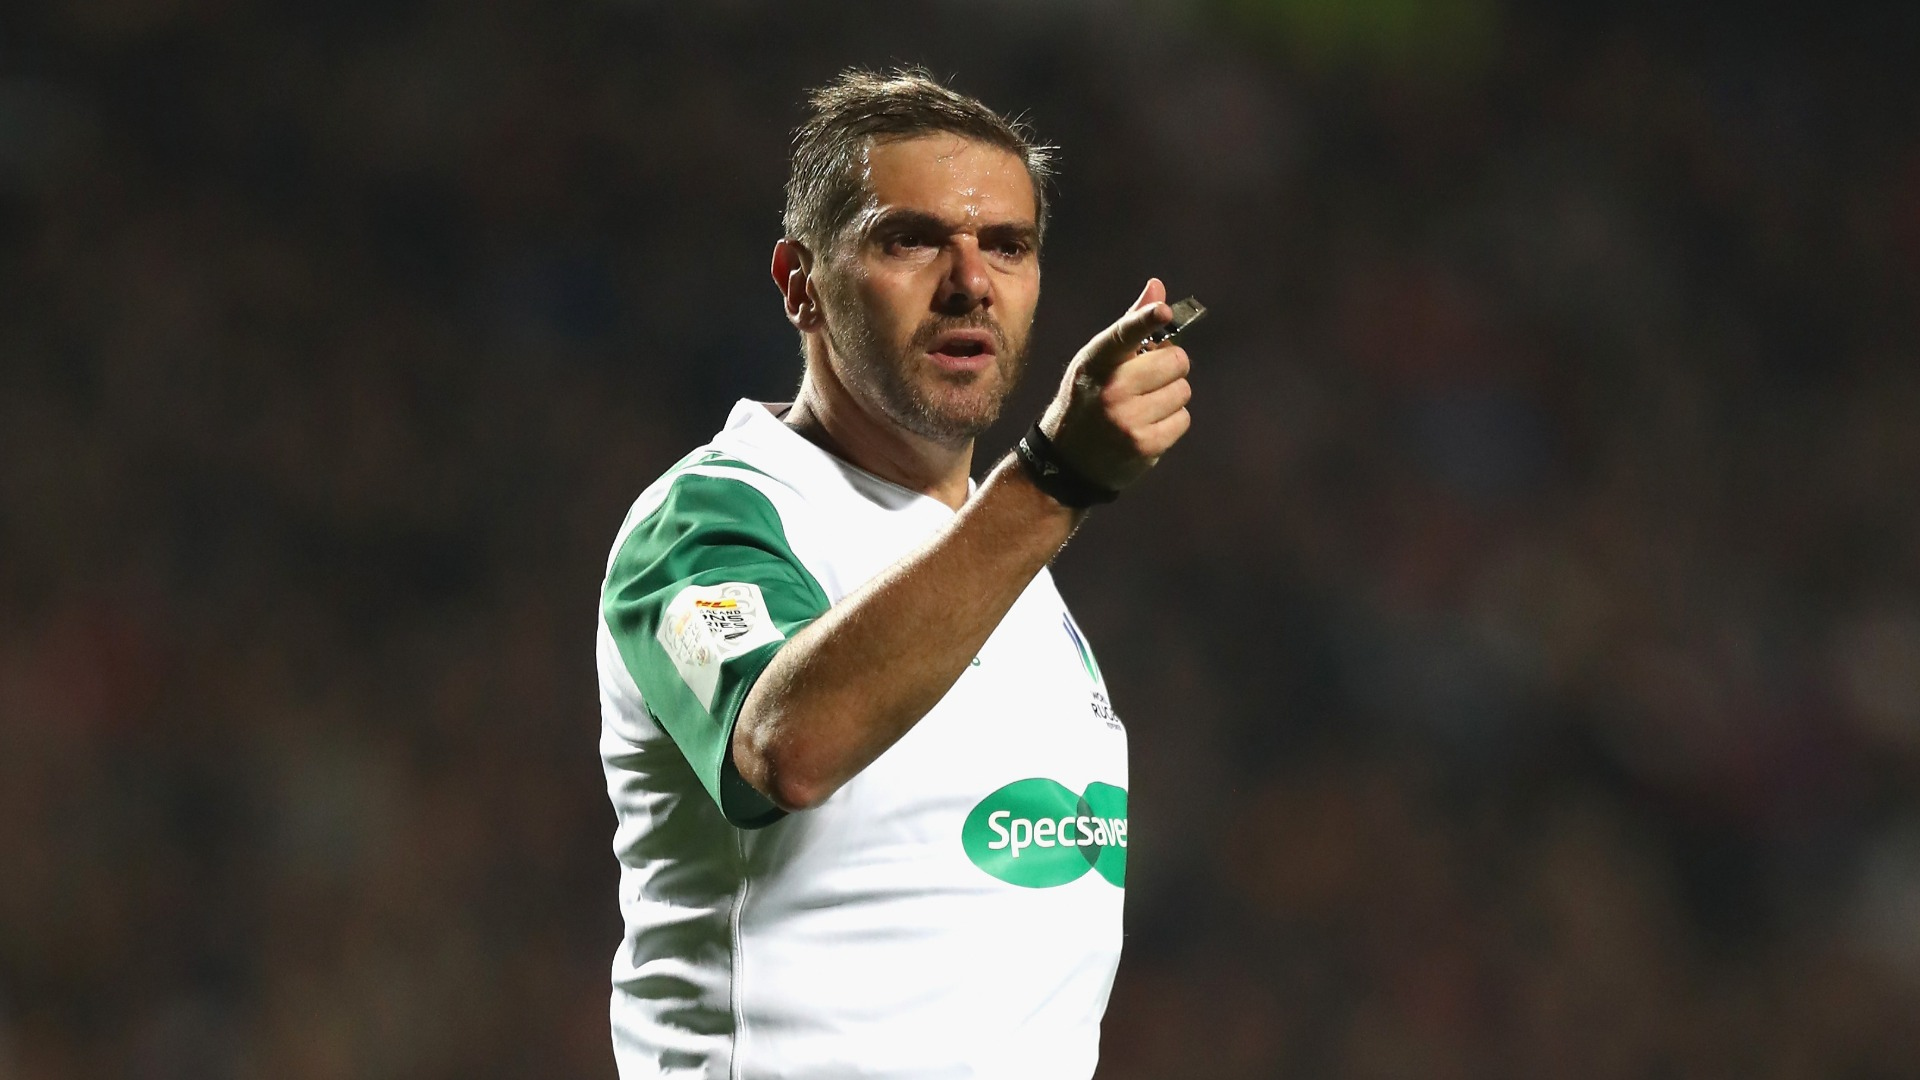 Springboks boss Rassie Erasmus has sought to put pressure on Rugby World Cup referee Jerome Garces, says New Zealand coach Steve Hansen.